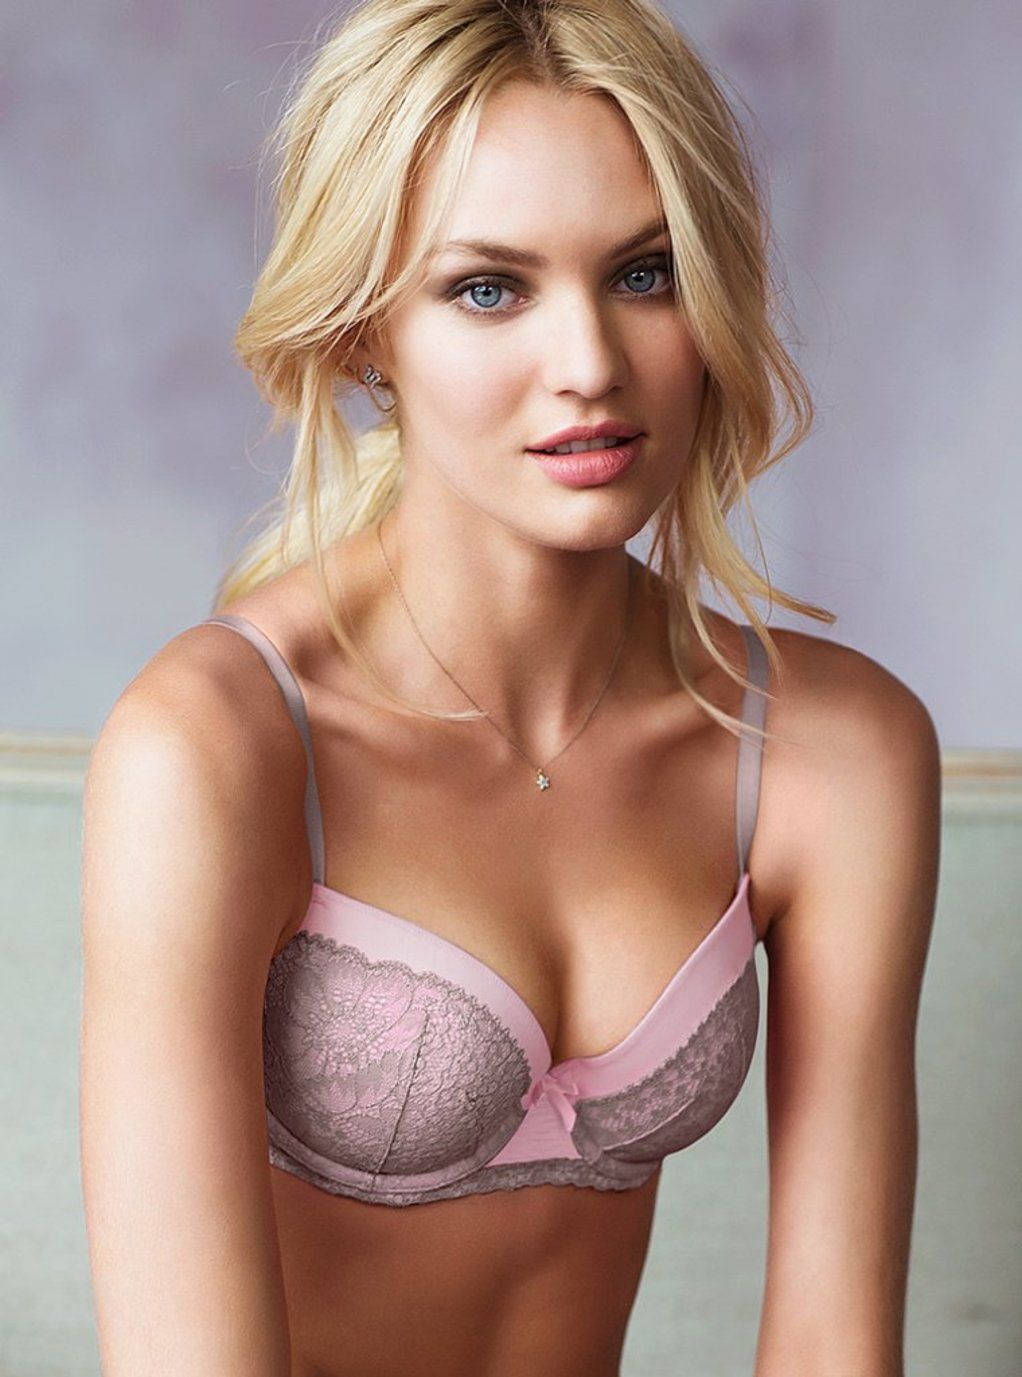 candice swanepoel Bra Photos Gallery|Bra Page